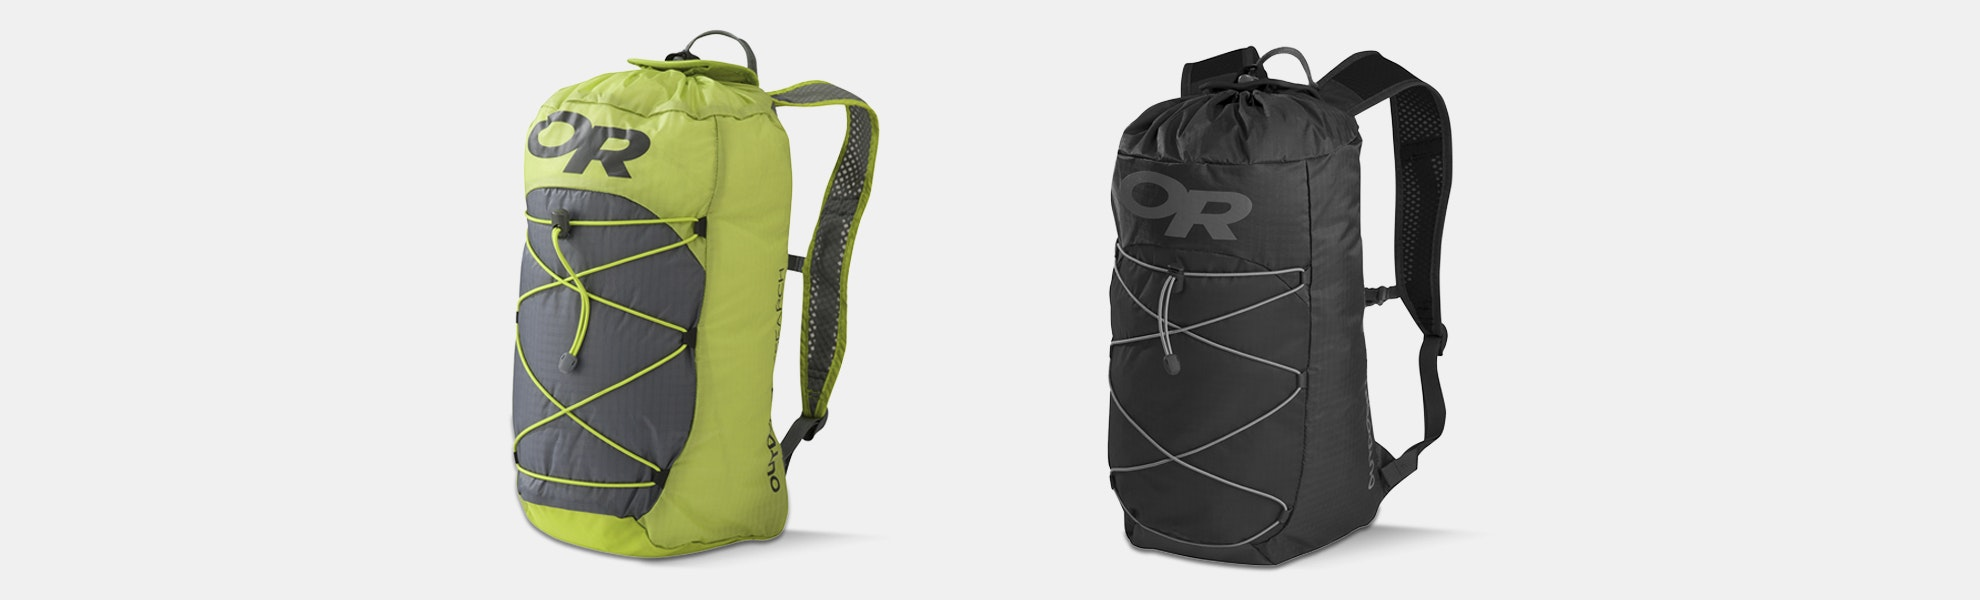 Outdoor Research Isolation Packs